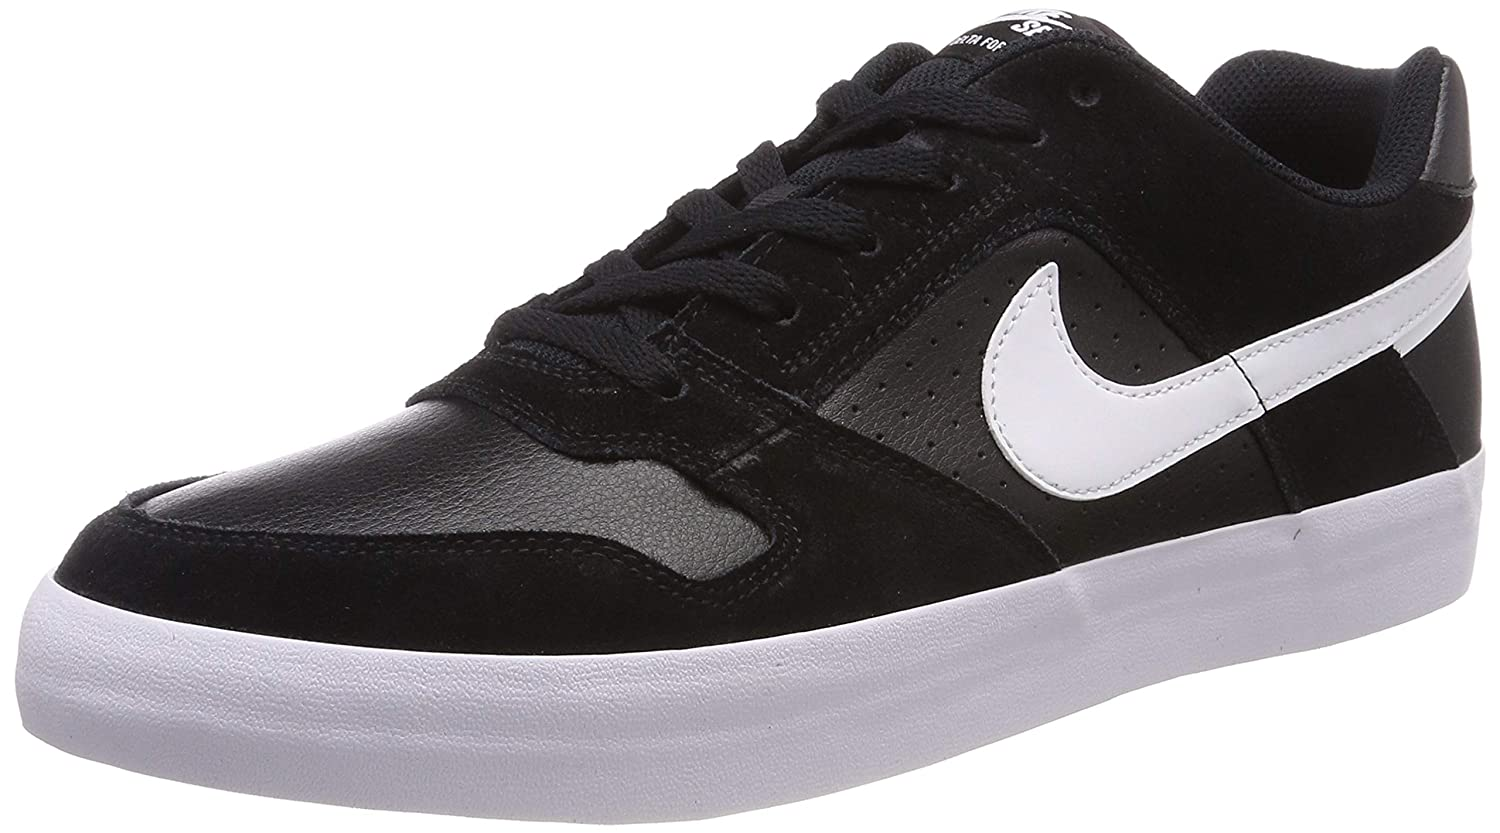 a588a54ff8ae7 Amazon.com   Nike Men's Sb Delta Force Vulc Black/White - Anthracite  Ankle-High Leather Skateboarding Shoe 10.5M   Fashion Sneakers